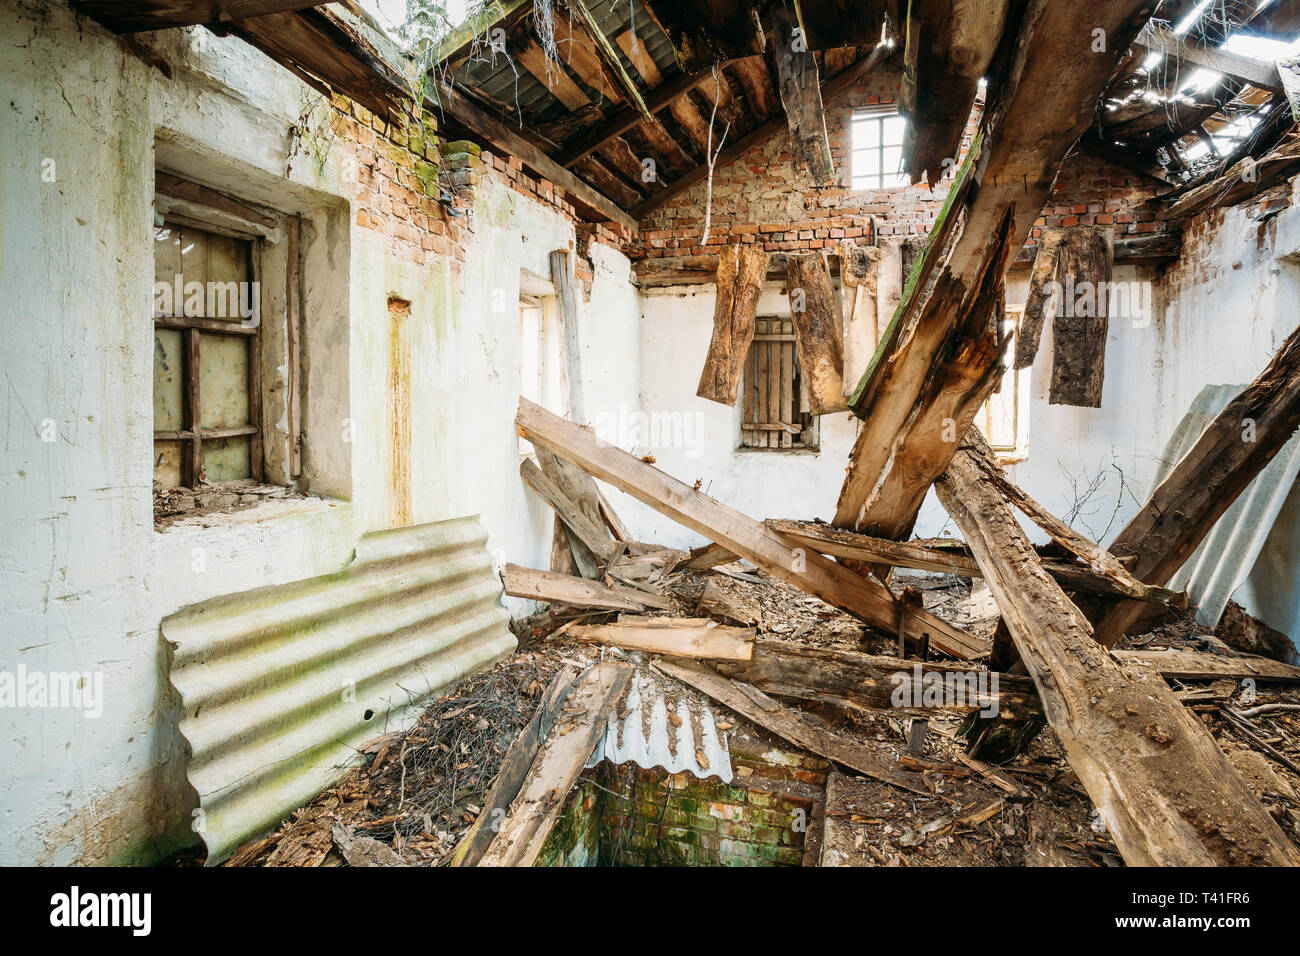 Belarus. Interior Of Ruined Abandoned Private Country House With Caved Roof In Evacuation Zone After Chernobyl Disaster. Terrible Consequences Of Nucl - Stock Image